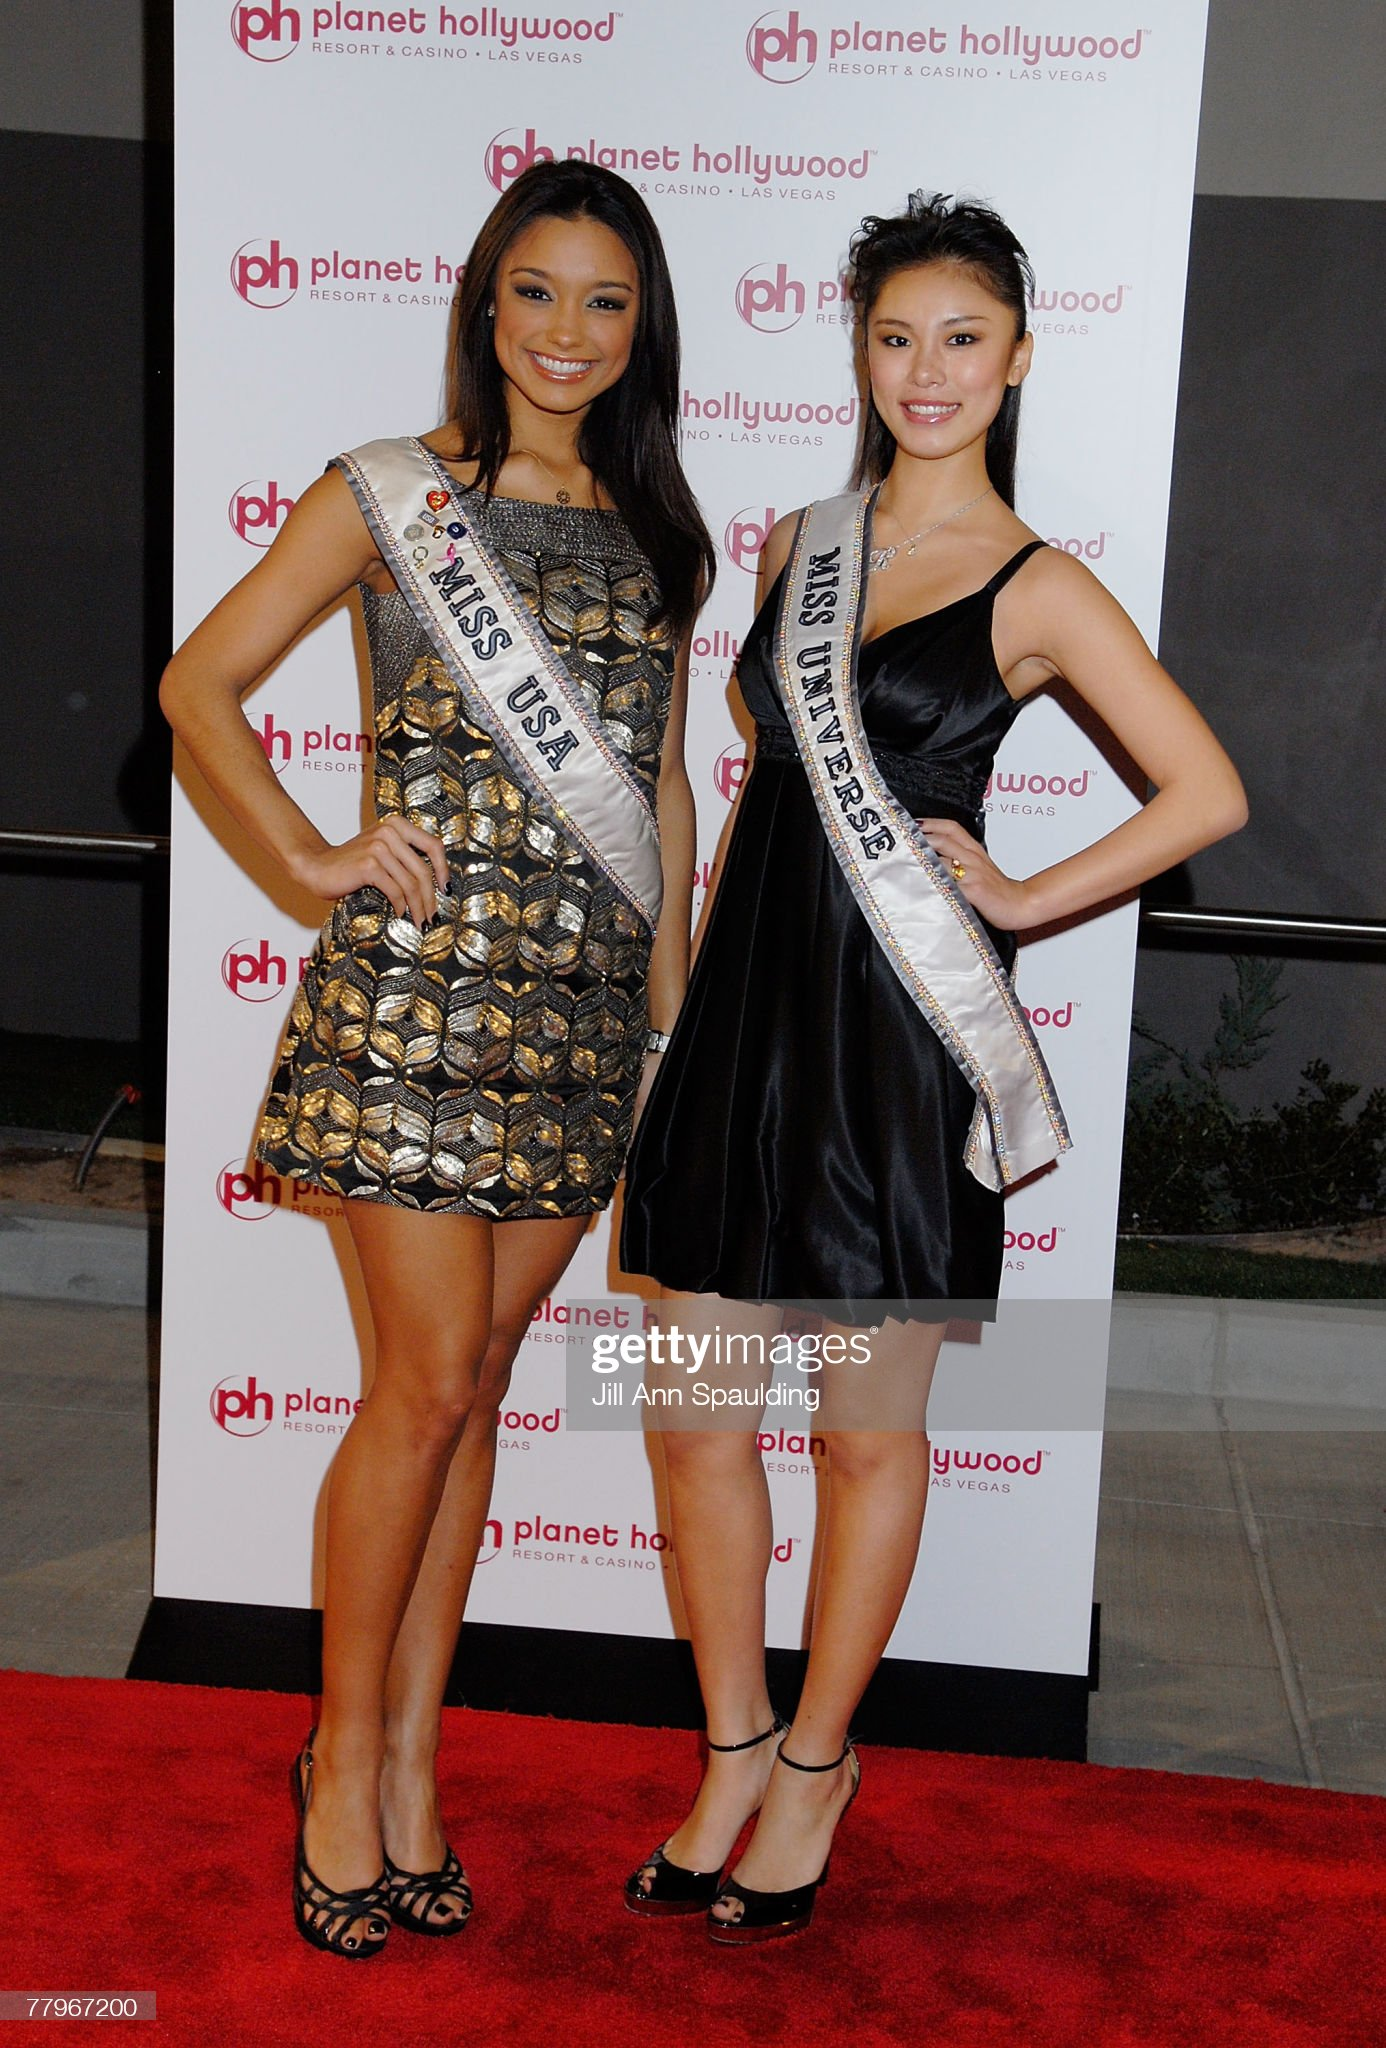 ¿Cuánto mide Rachel Smith? - Real height Miss-universe-riyo-mori-and-miss-usa-2007-rachel-smith-arrive-at-picture-id77967200?s=2048x2048